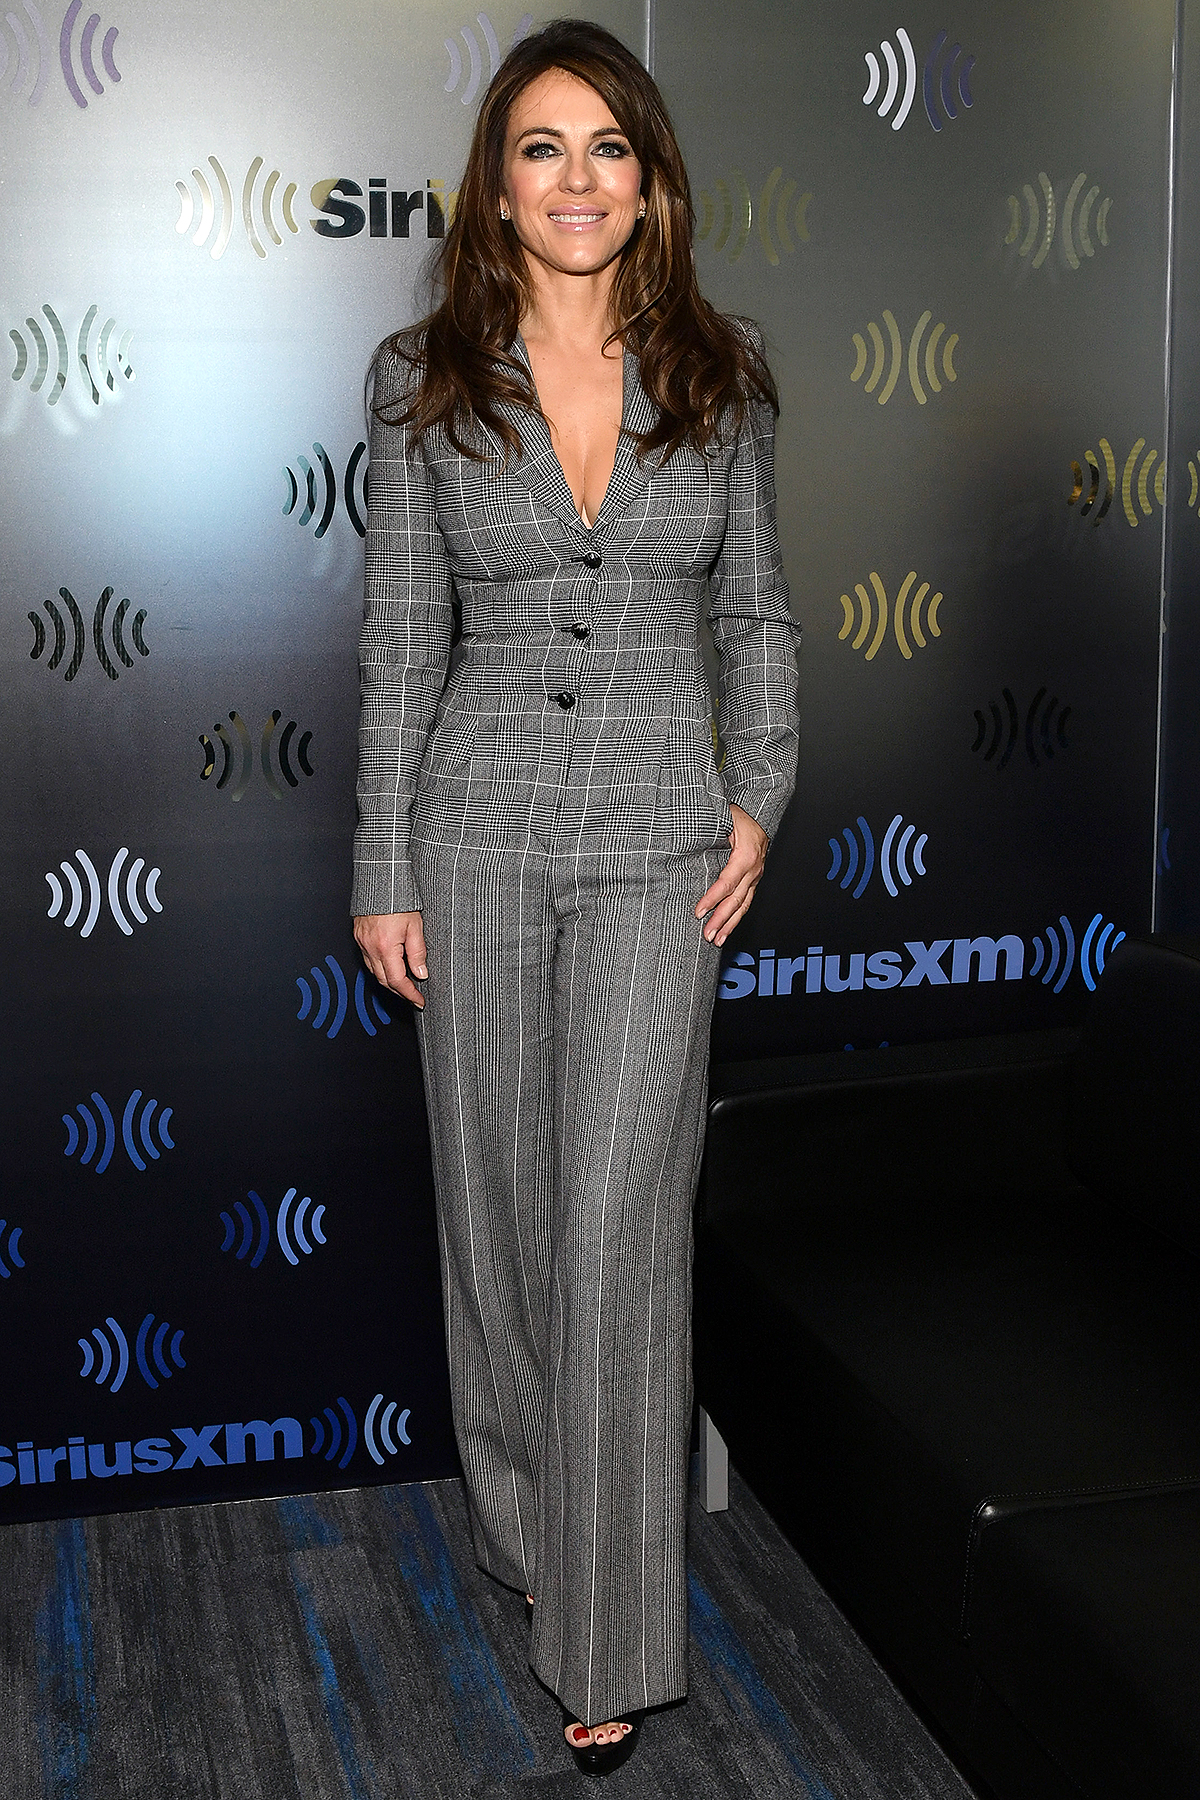 NEW YORK, NEW YORK - DECEMBER 11: (EXCLUSIVE COVERAGE) Elizabeth Hurley visits The Jenny McCarthy Show at SiriusXM Studios on December 11, 2019